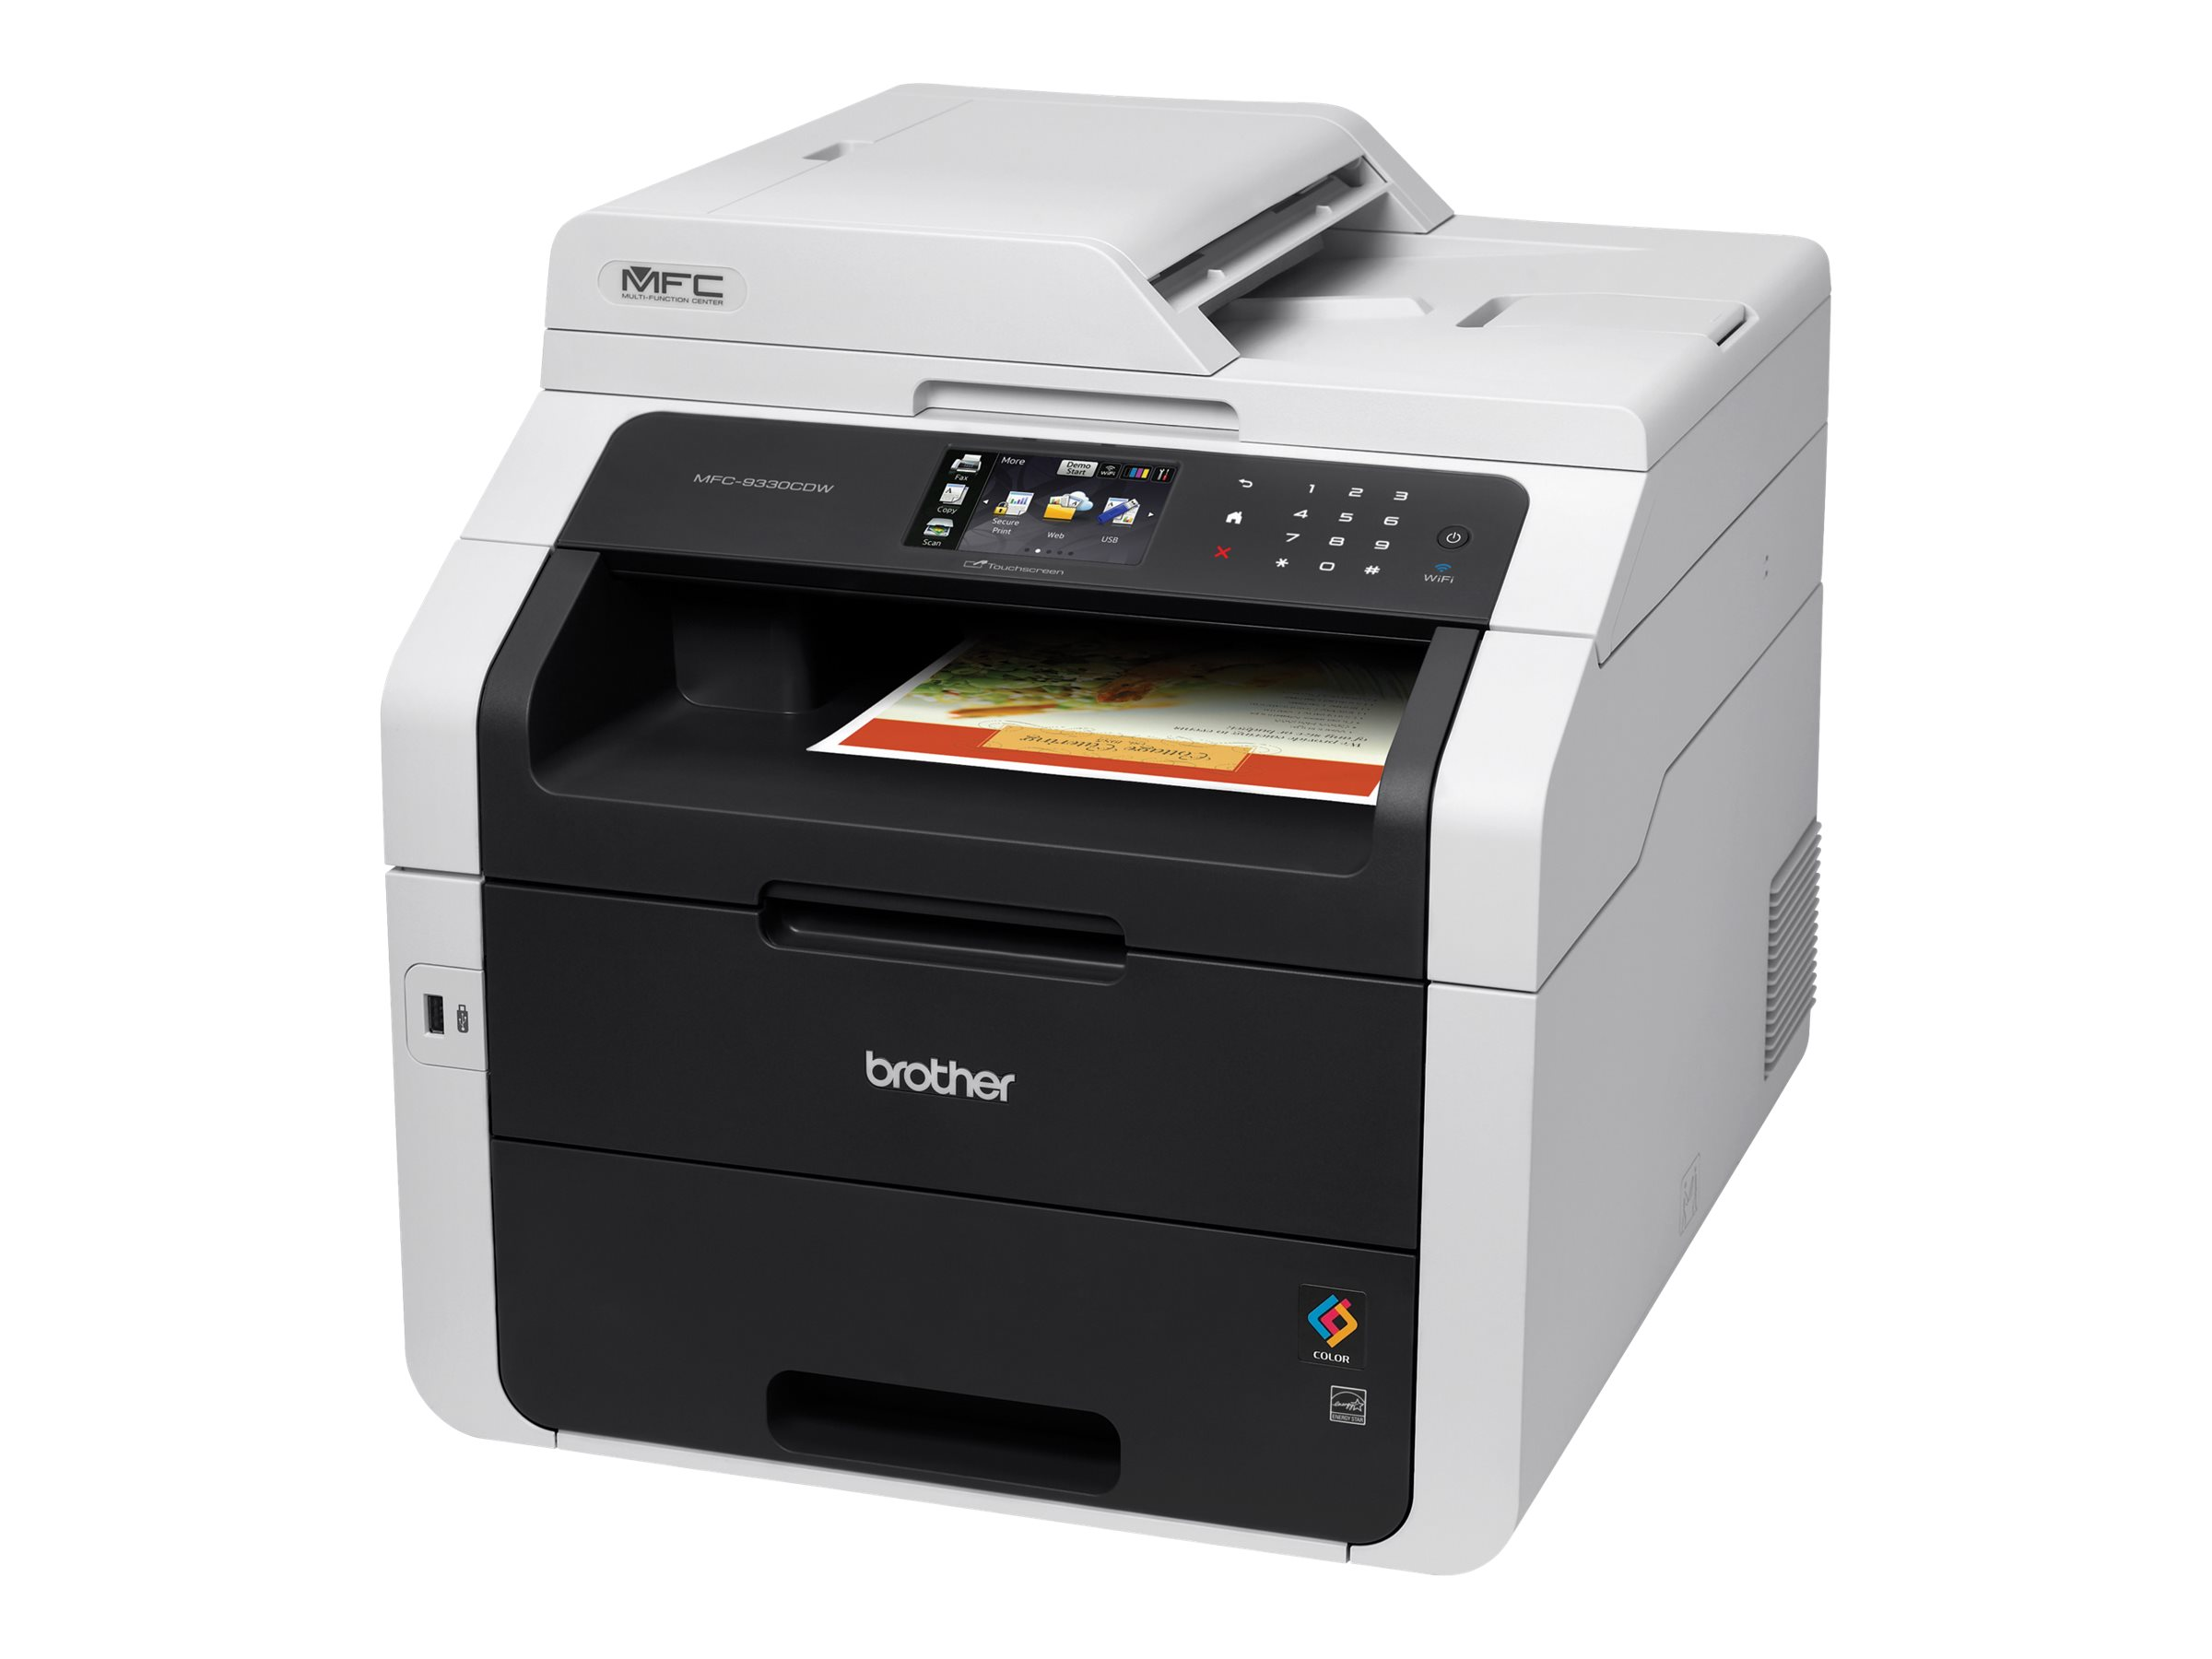 Brother MFC-9330CDW multifunction printer (color) by Brother